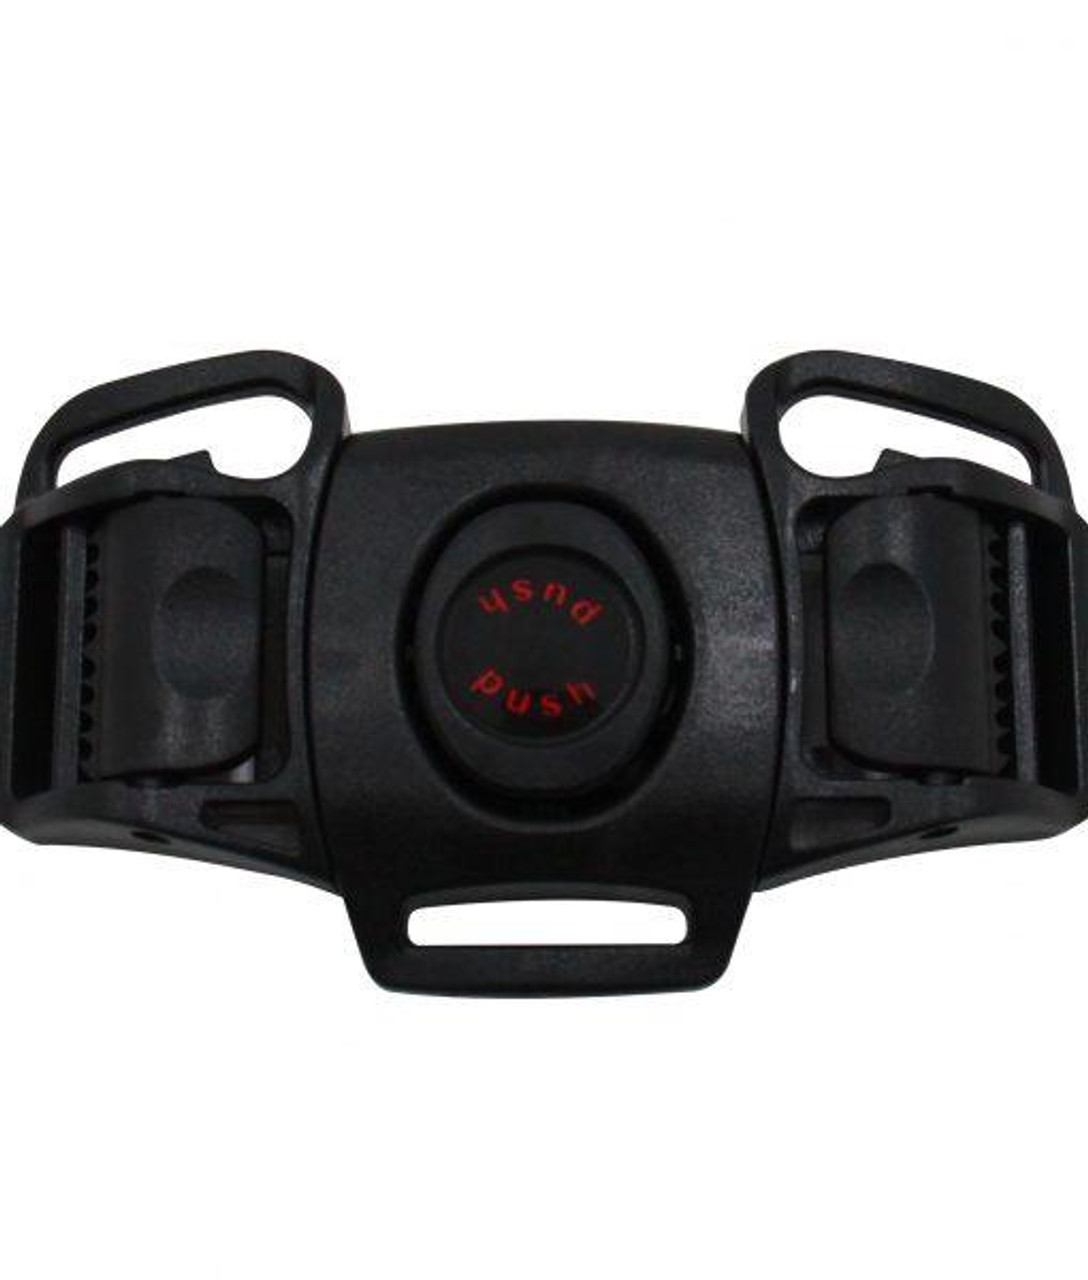 Baby Jogger City Elite Complete Buckle 3pcs at Baby Barn Discounts Replacement part compatible with the City Elite strollers.